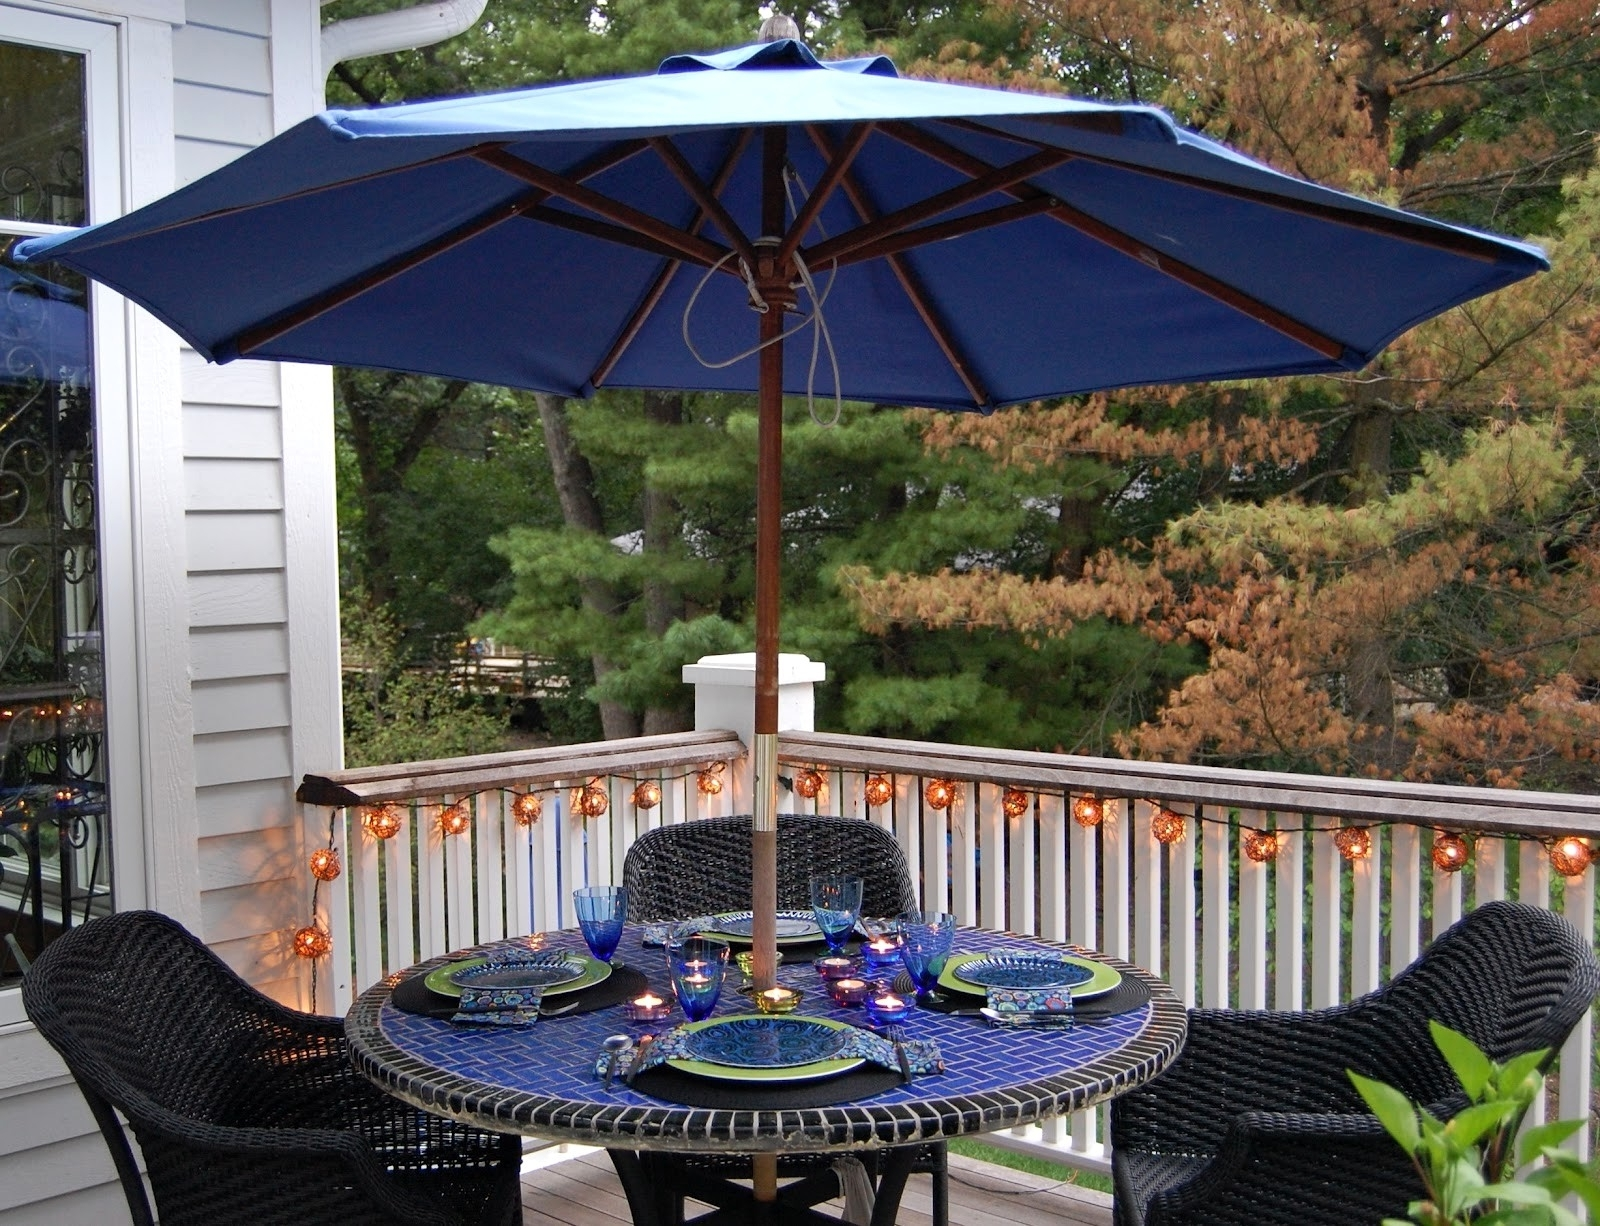 Fashionable Outdoor Patio Furniture Sets With Umbrella Enjoy Your Summer Time Regarding Patio Sets With Umbrellas (View 7 of 20)